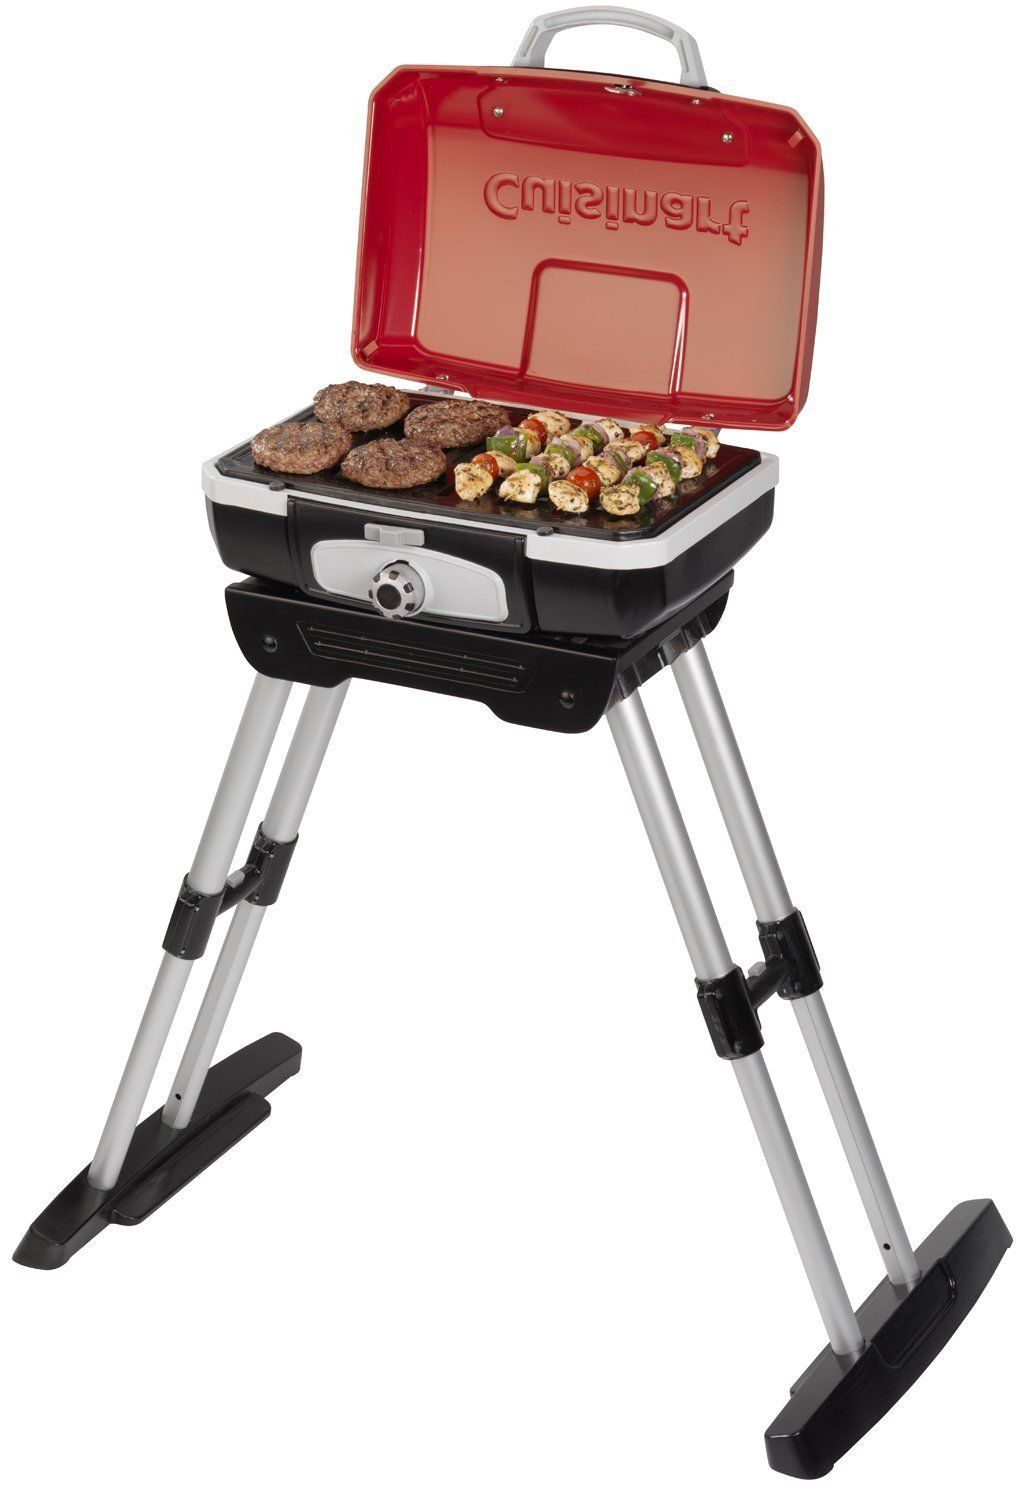 Gas Grill Portable Outdoor BBQ Tailgate Camping Picnic Barbecue Stand Cuisinart